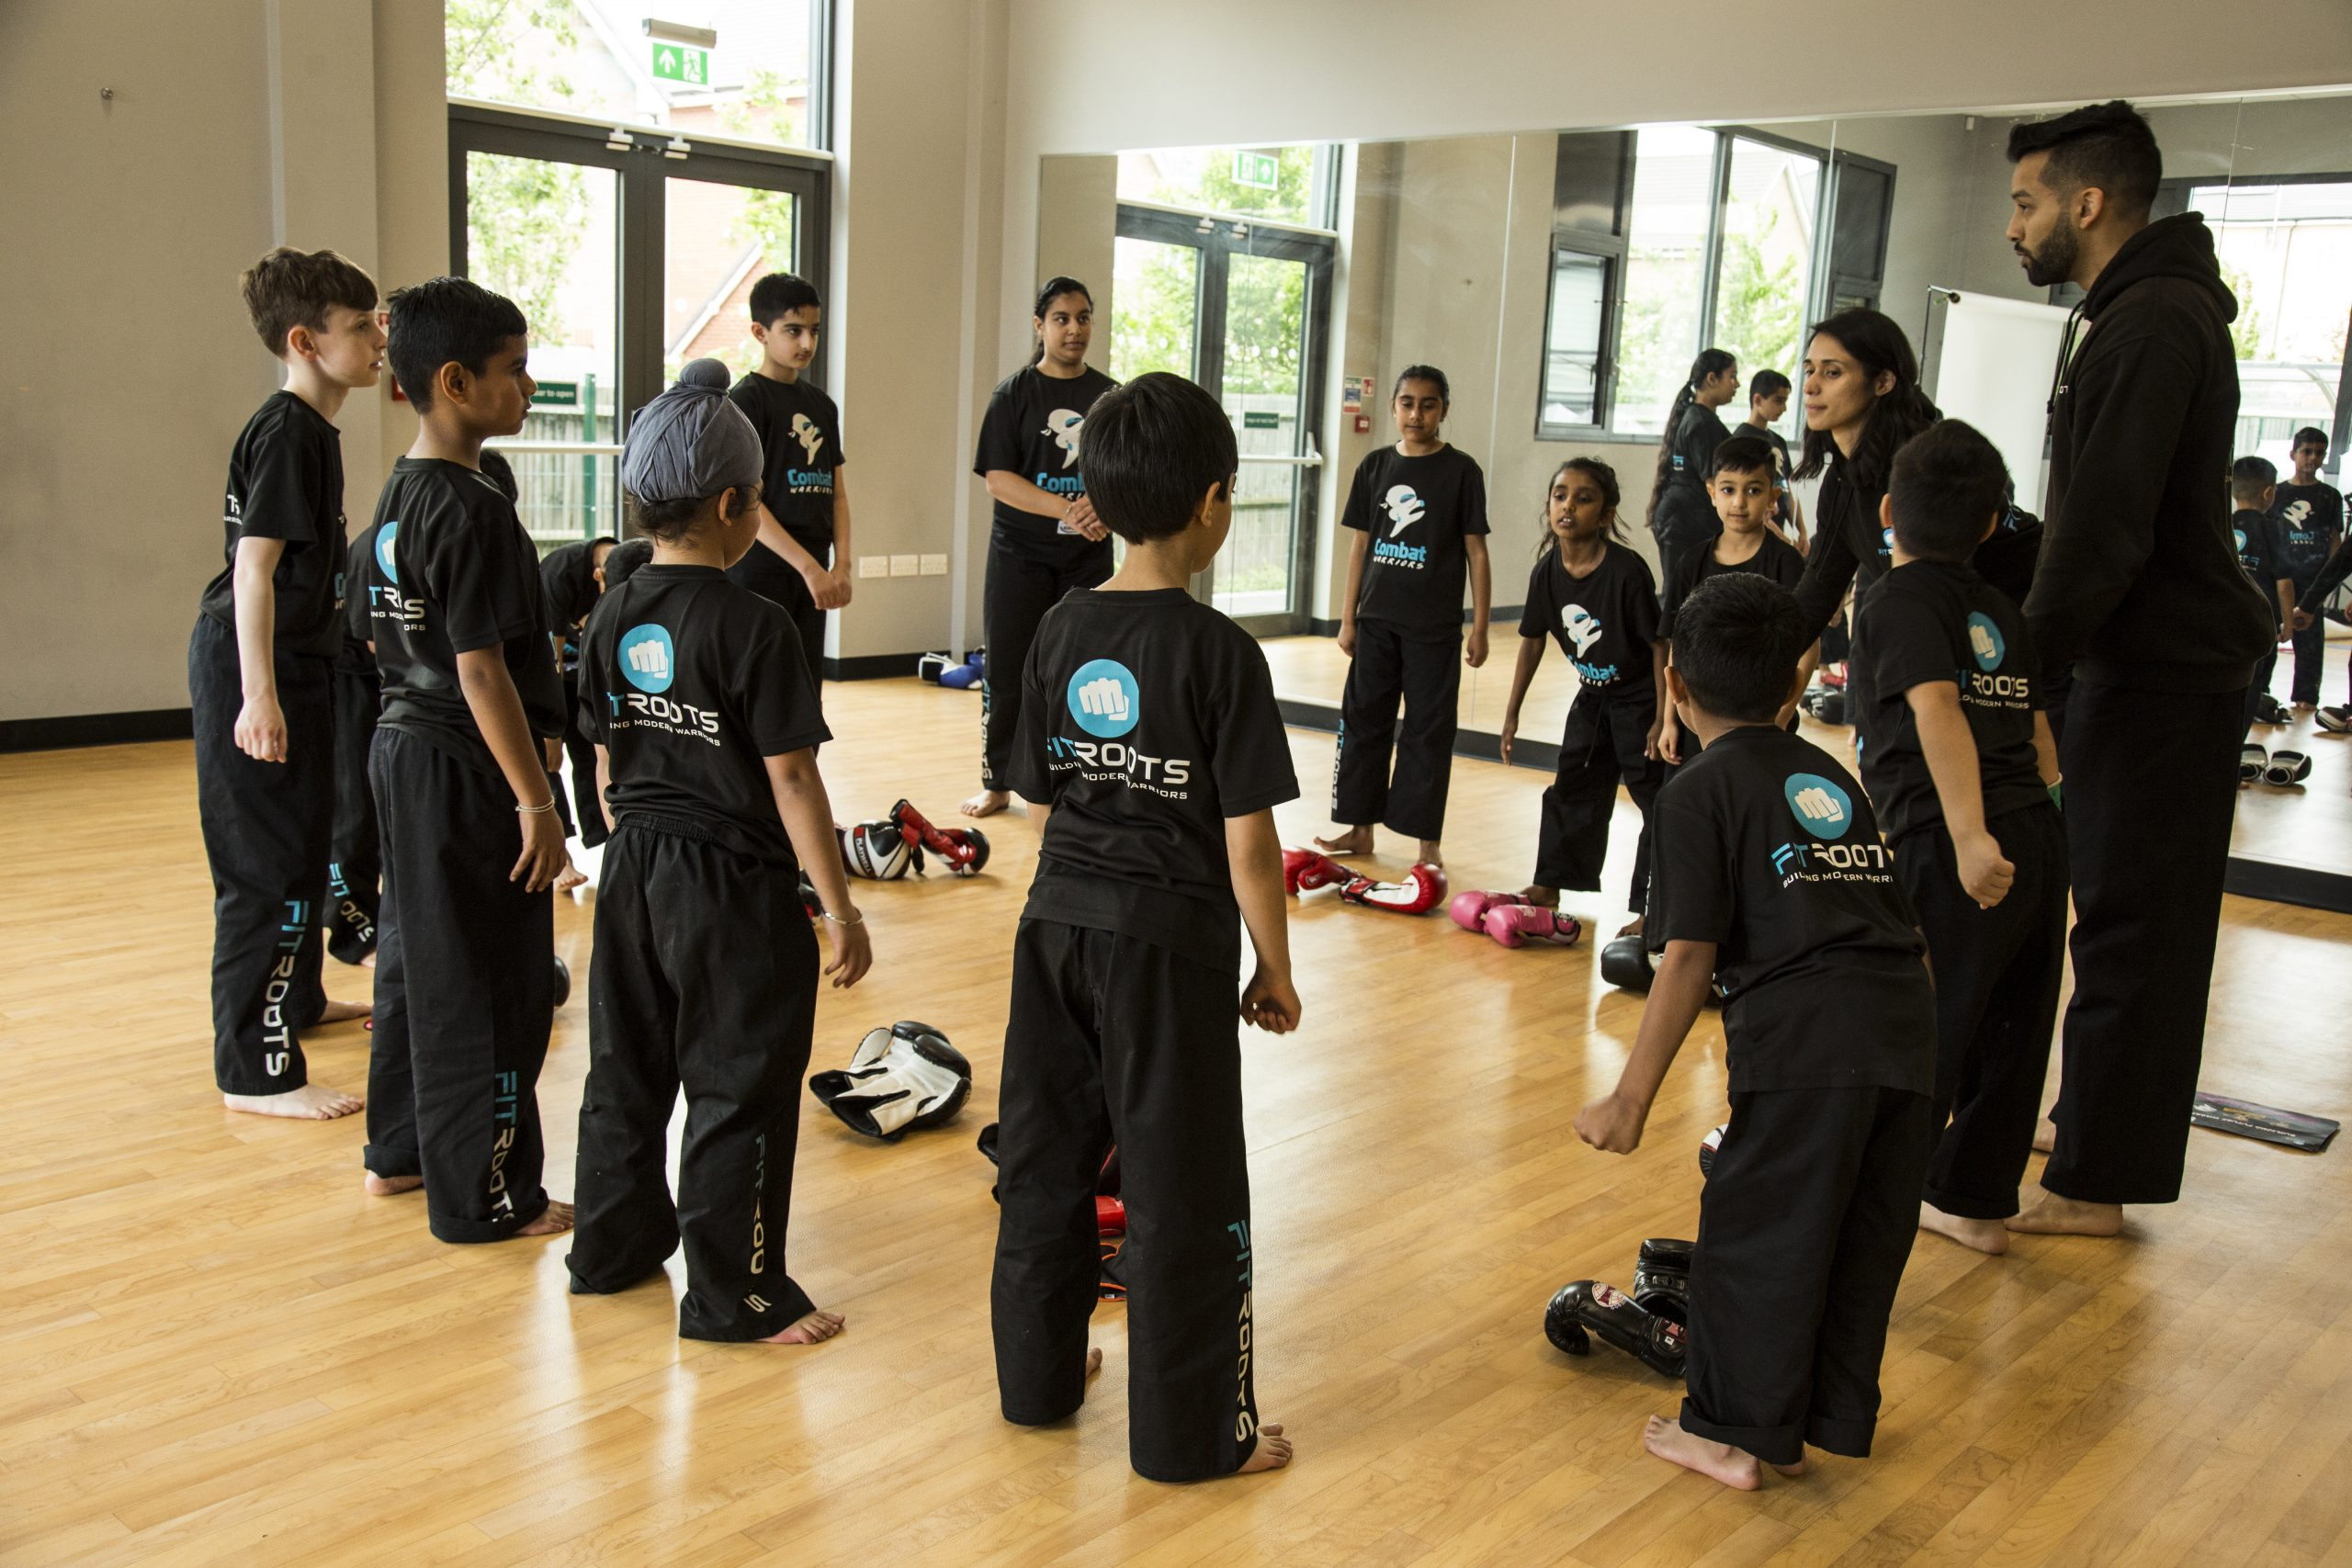 Combat Warriors Bowing in Martial Arts Class